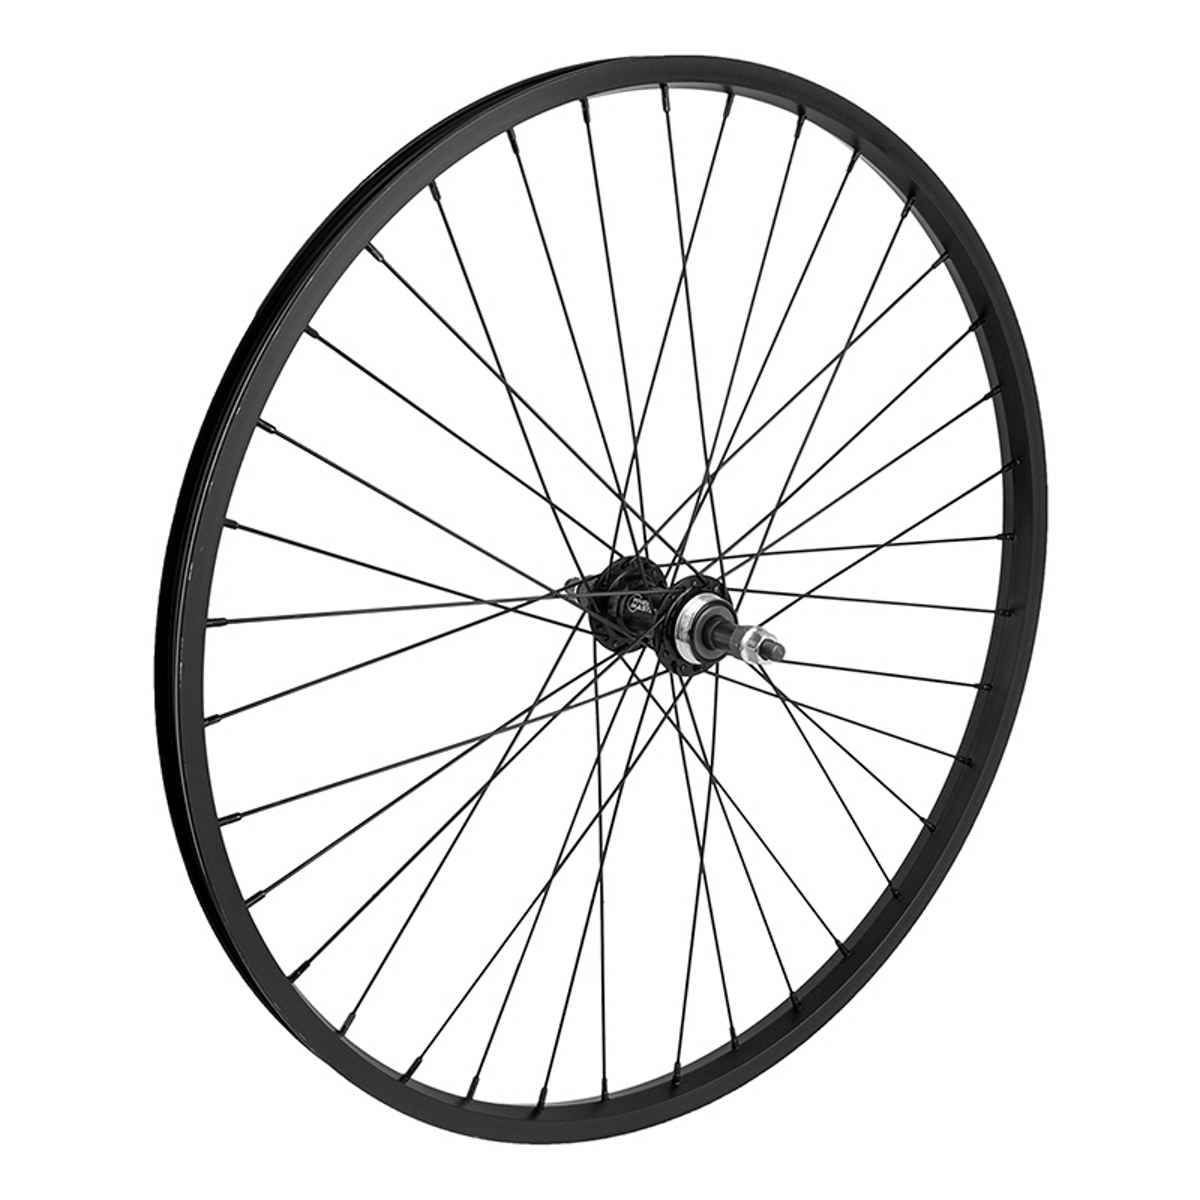 Wheel Masters 26 Inch Alloy Mountain Single Wall - 741594